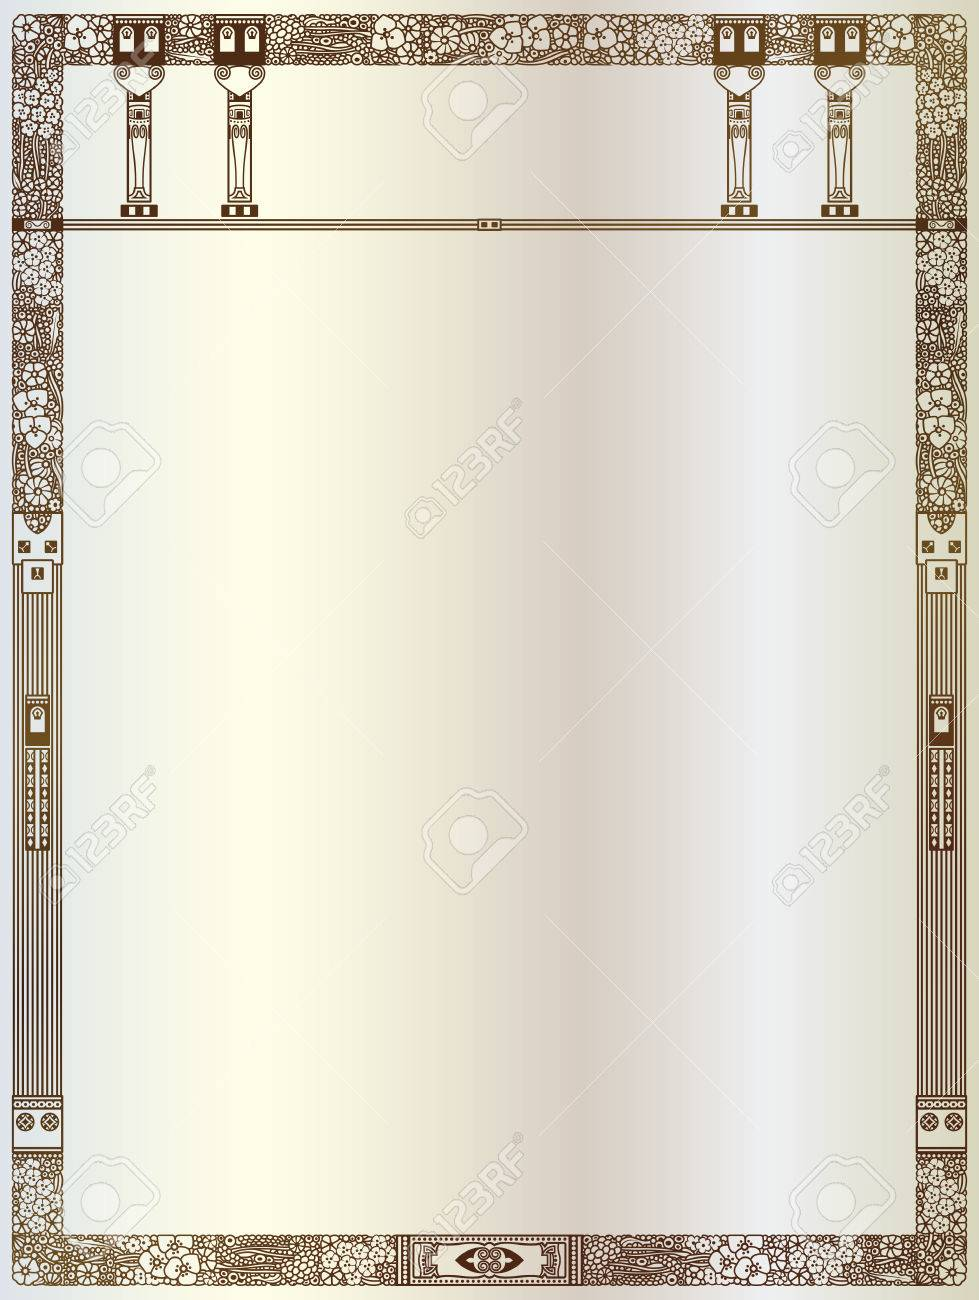 Luxury vector frame with border in greek style for advertisements luxury vector frame with border in greek style for advertisements wedding invitations or greeting jeuxipadfo Gallery